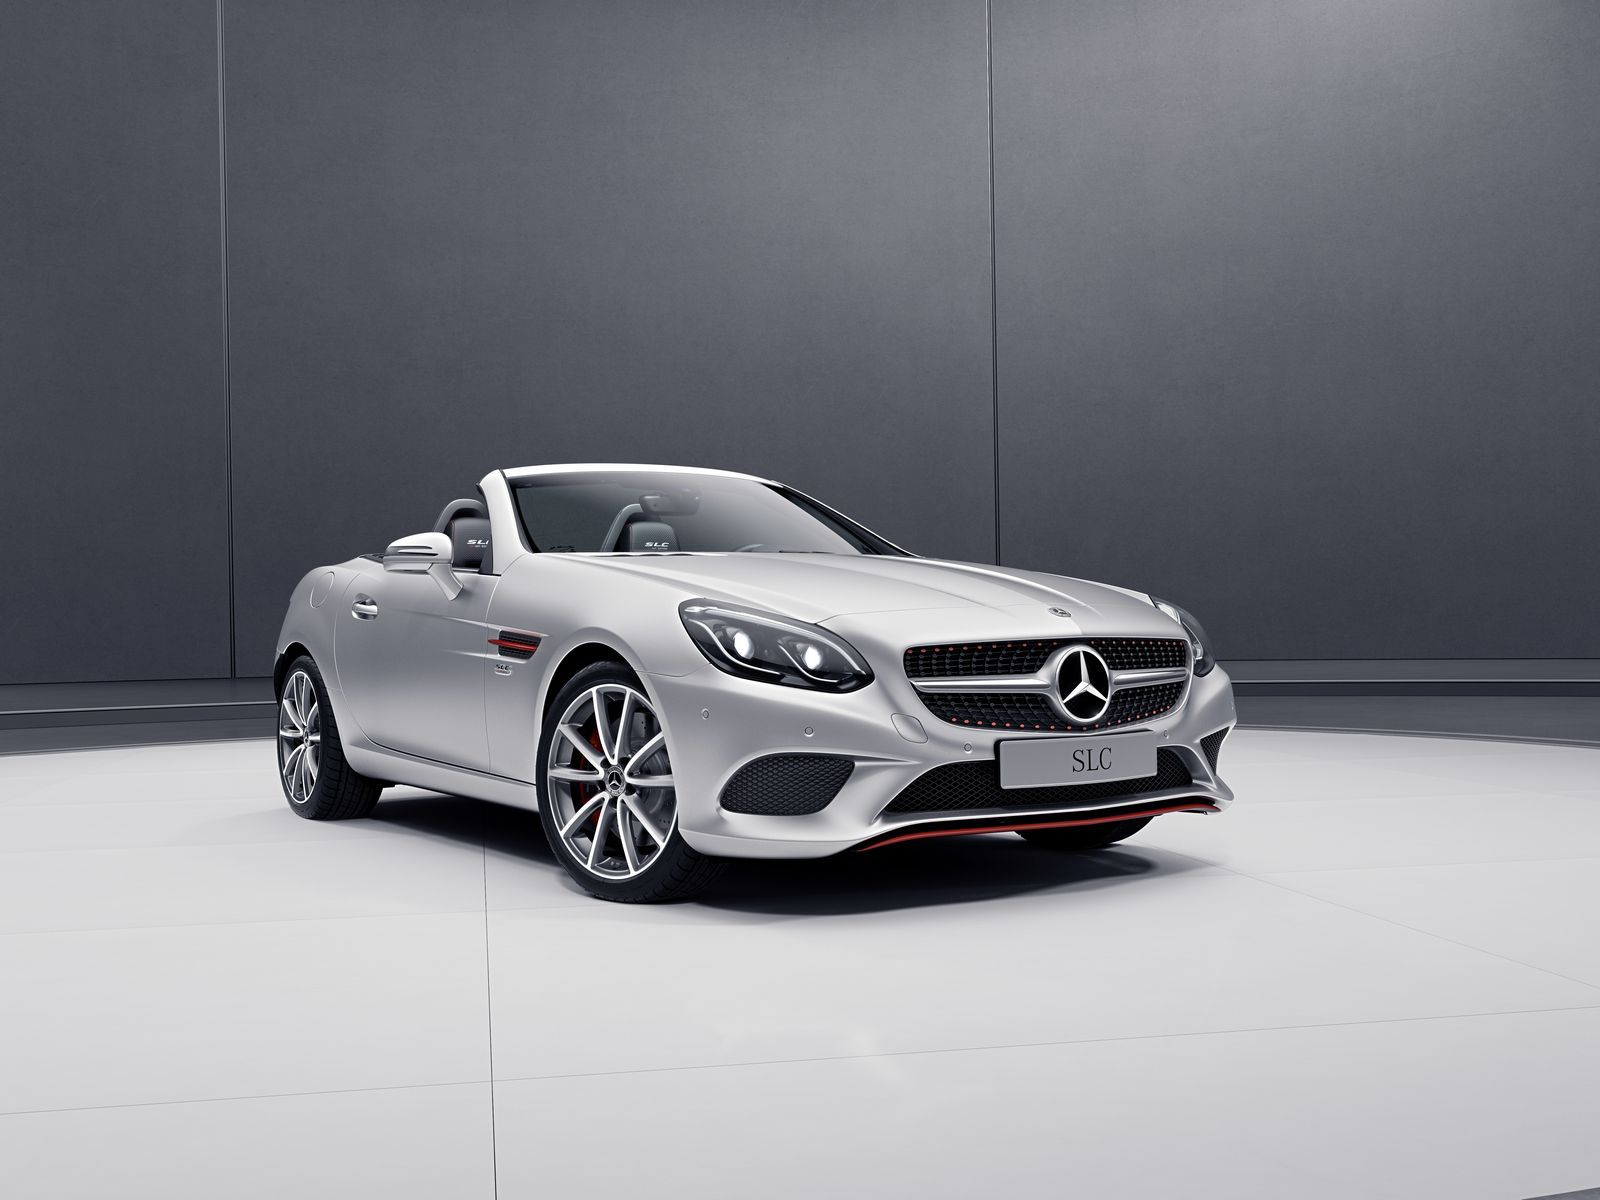 Mercedes Benz Released Two New Special Editions For The Slc And Sl The Slc Redart Is Offered For The Slc 180 Slc 200 Slc 250d Slc 300 And Slc 43 Amg In 8 D